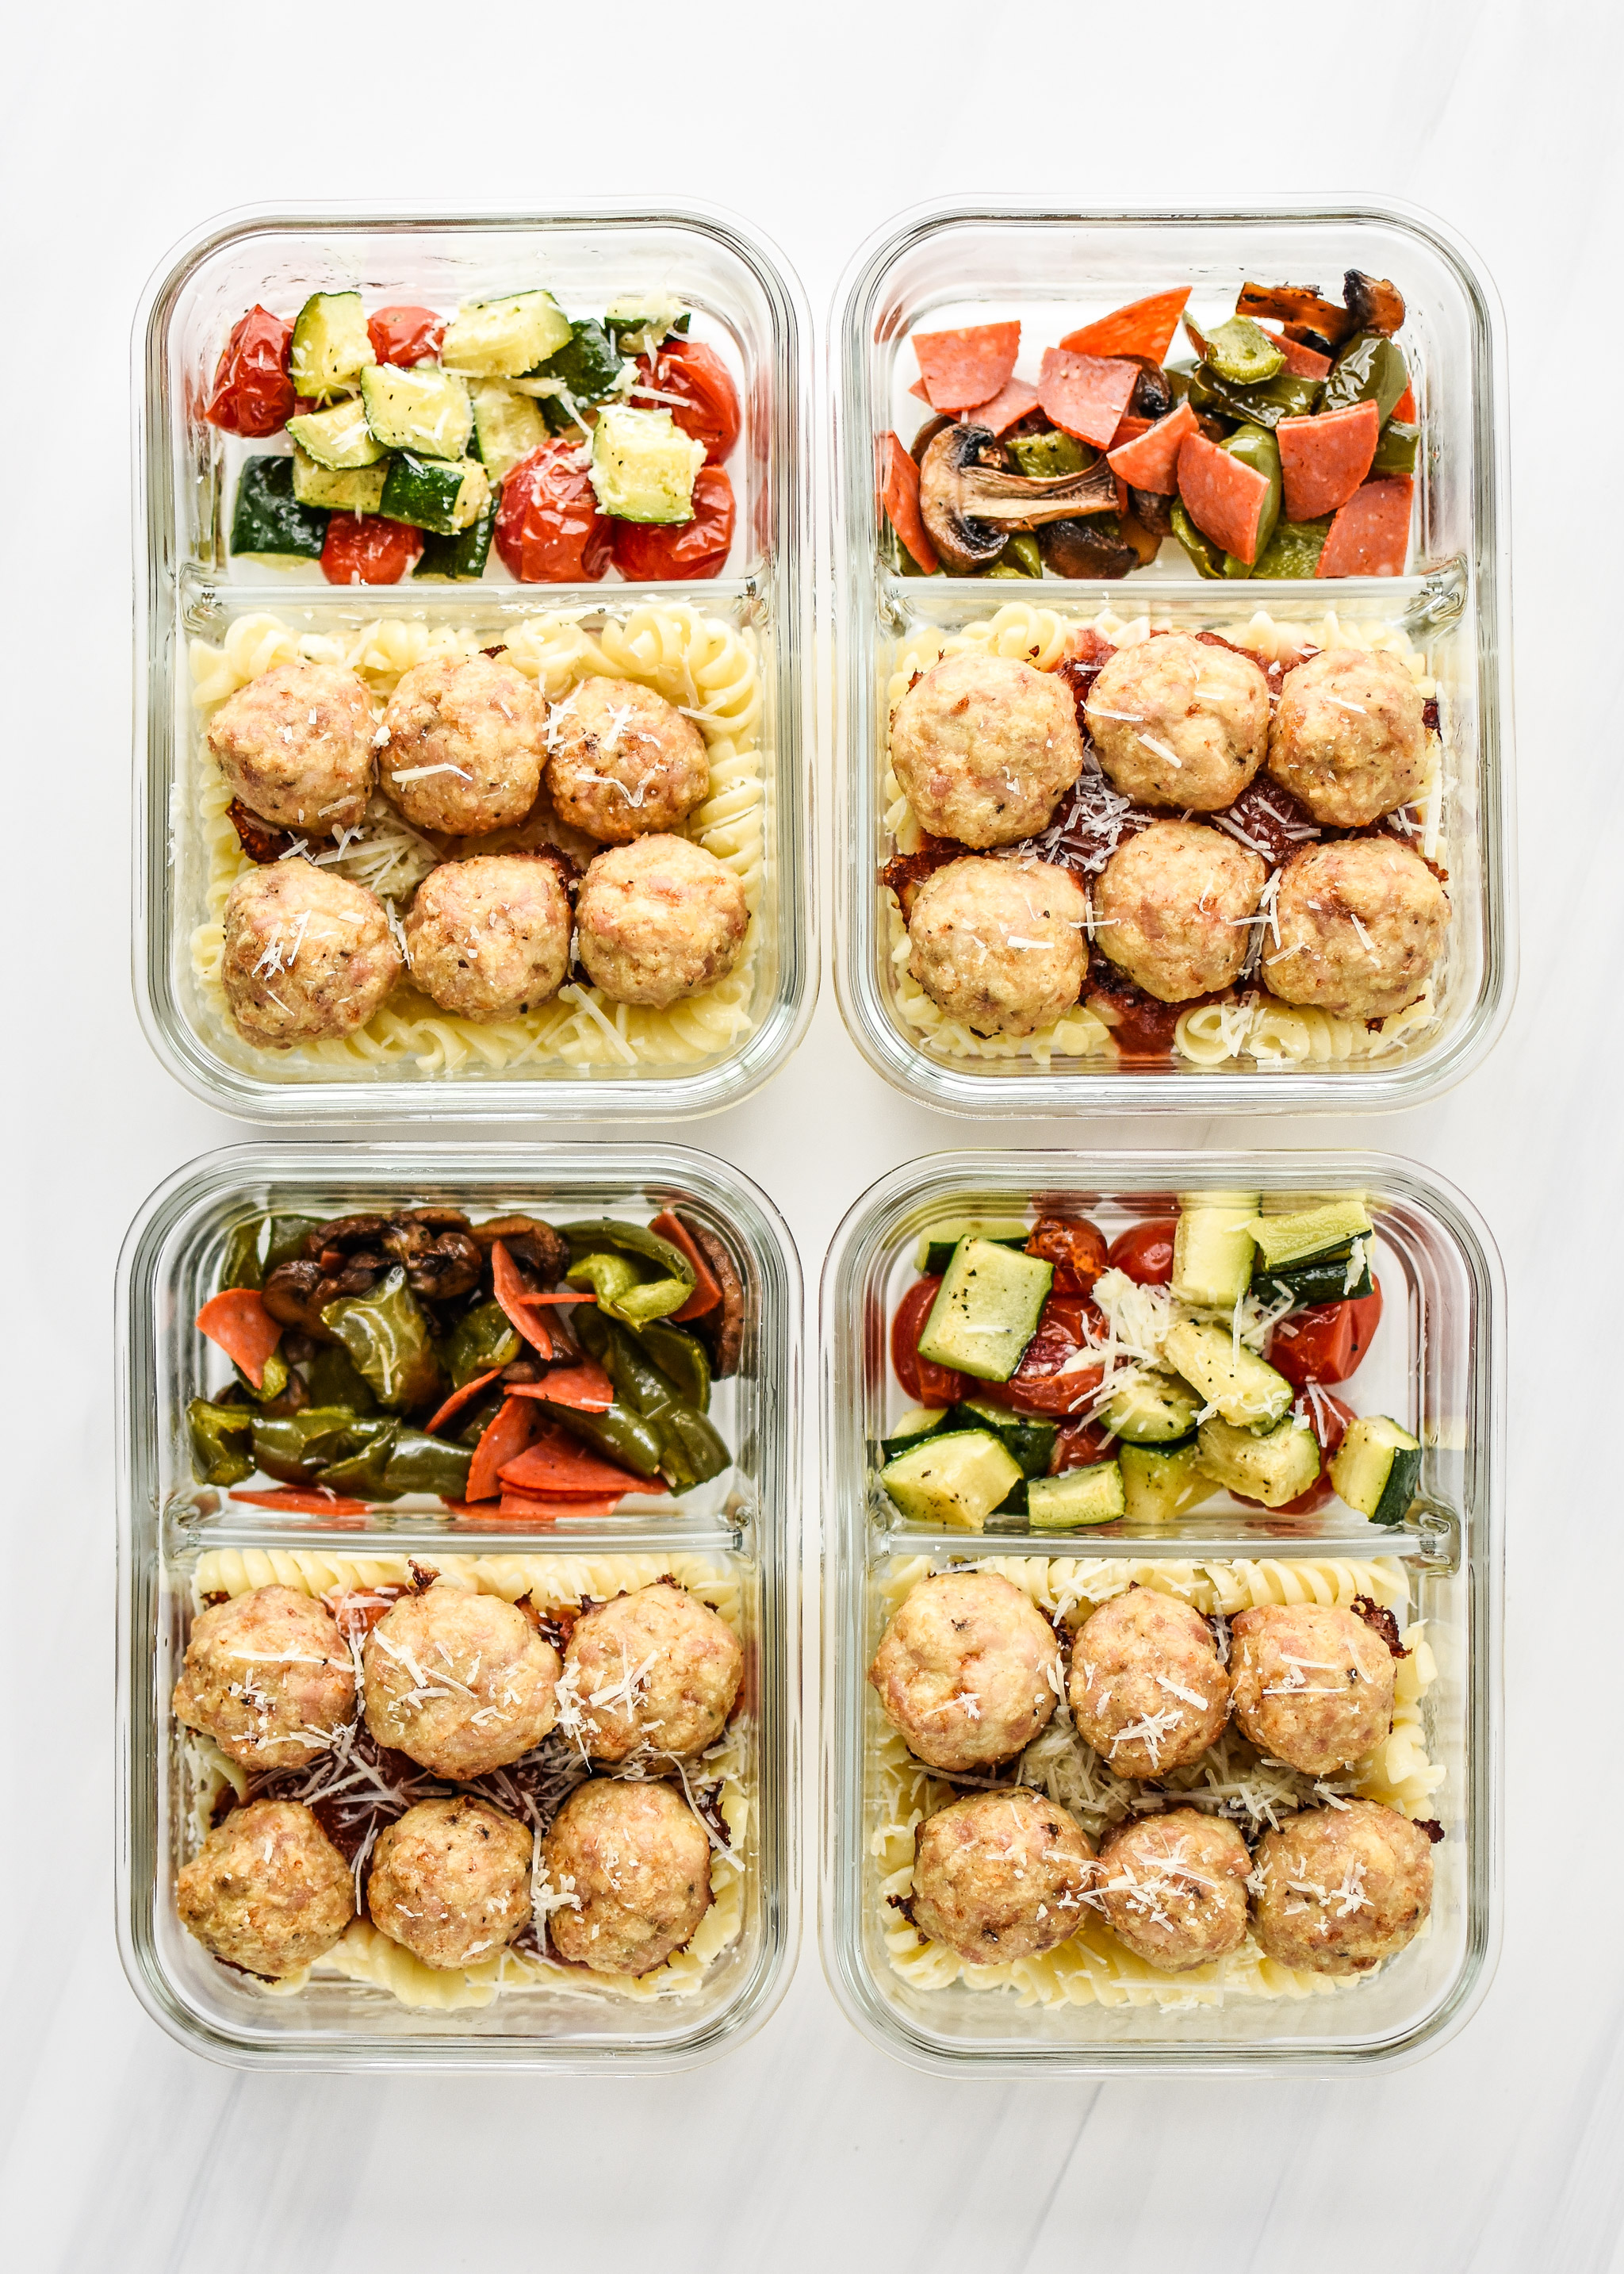 Four portions of the Chicken Meatballs Two Ways Meal Prep Lunches.